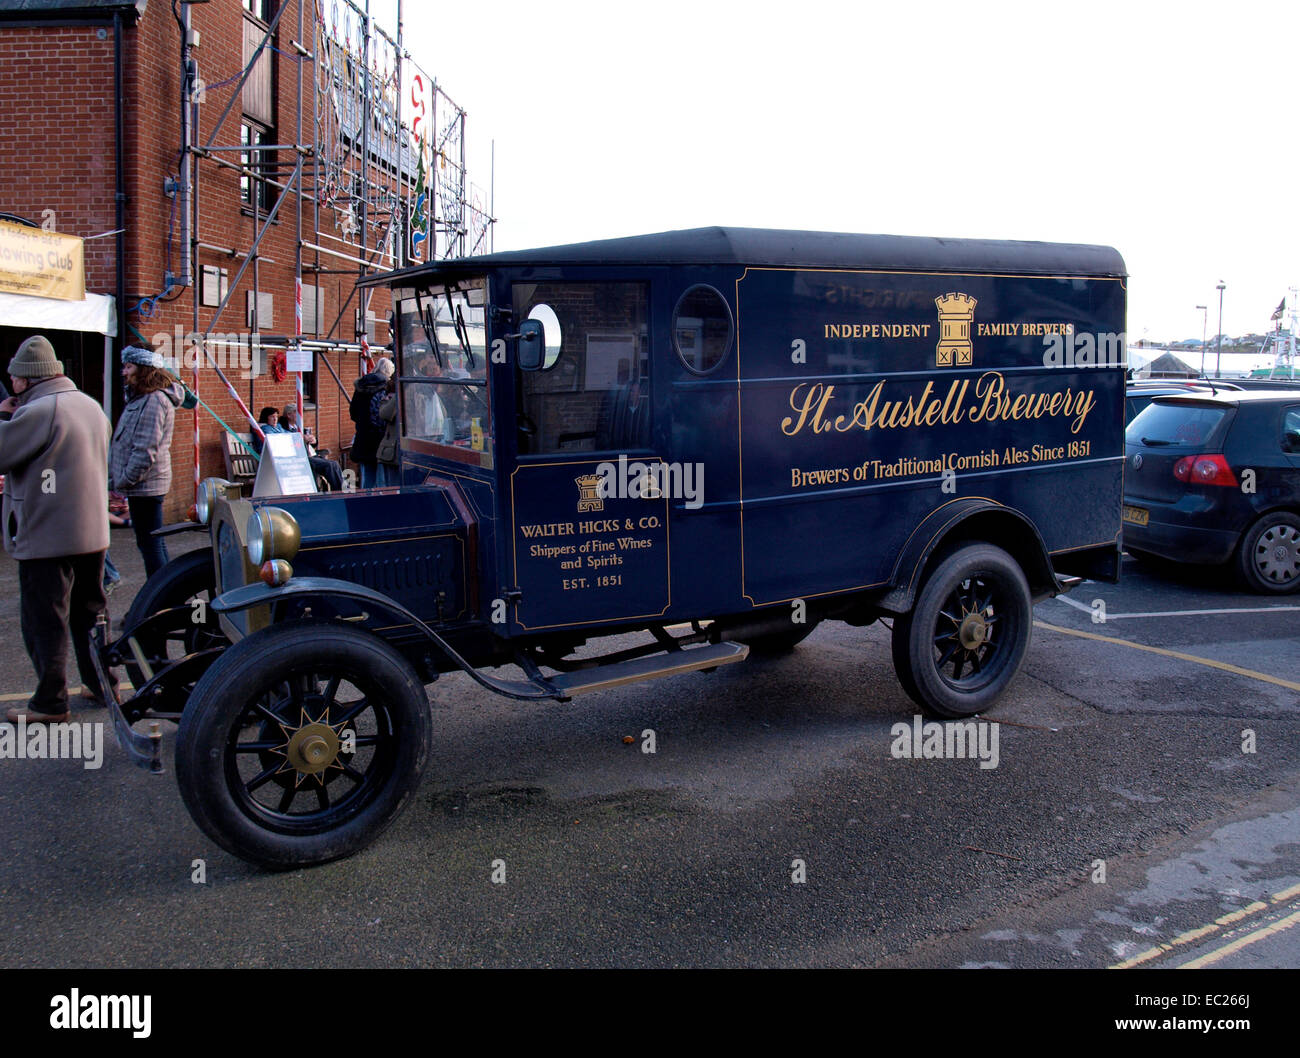 Old fashioned style replica delivery truck now used to advertise ...